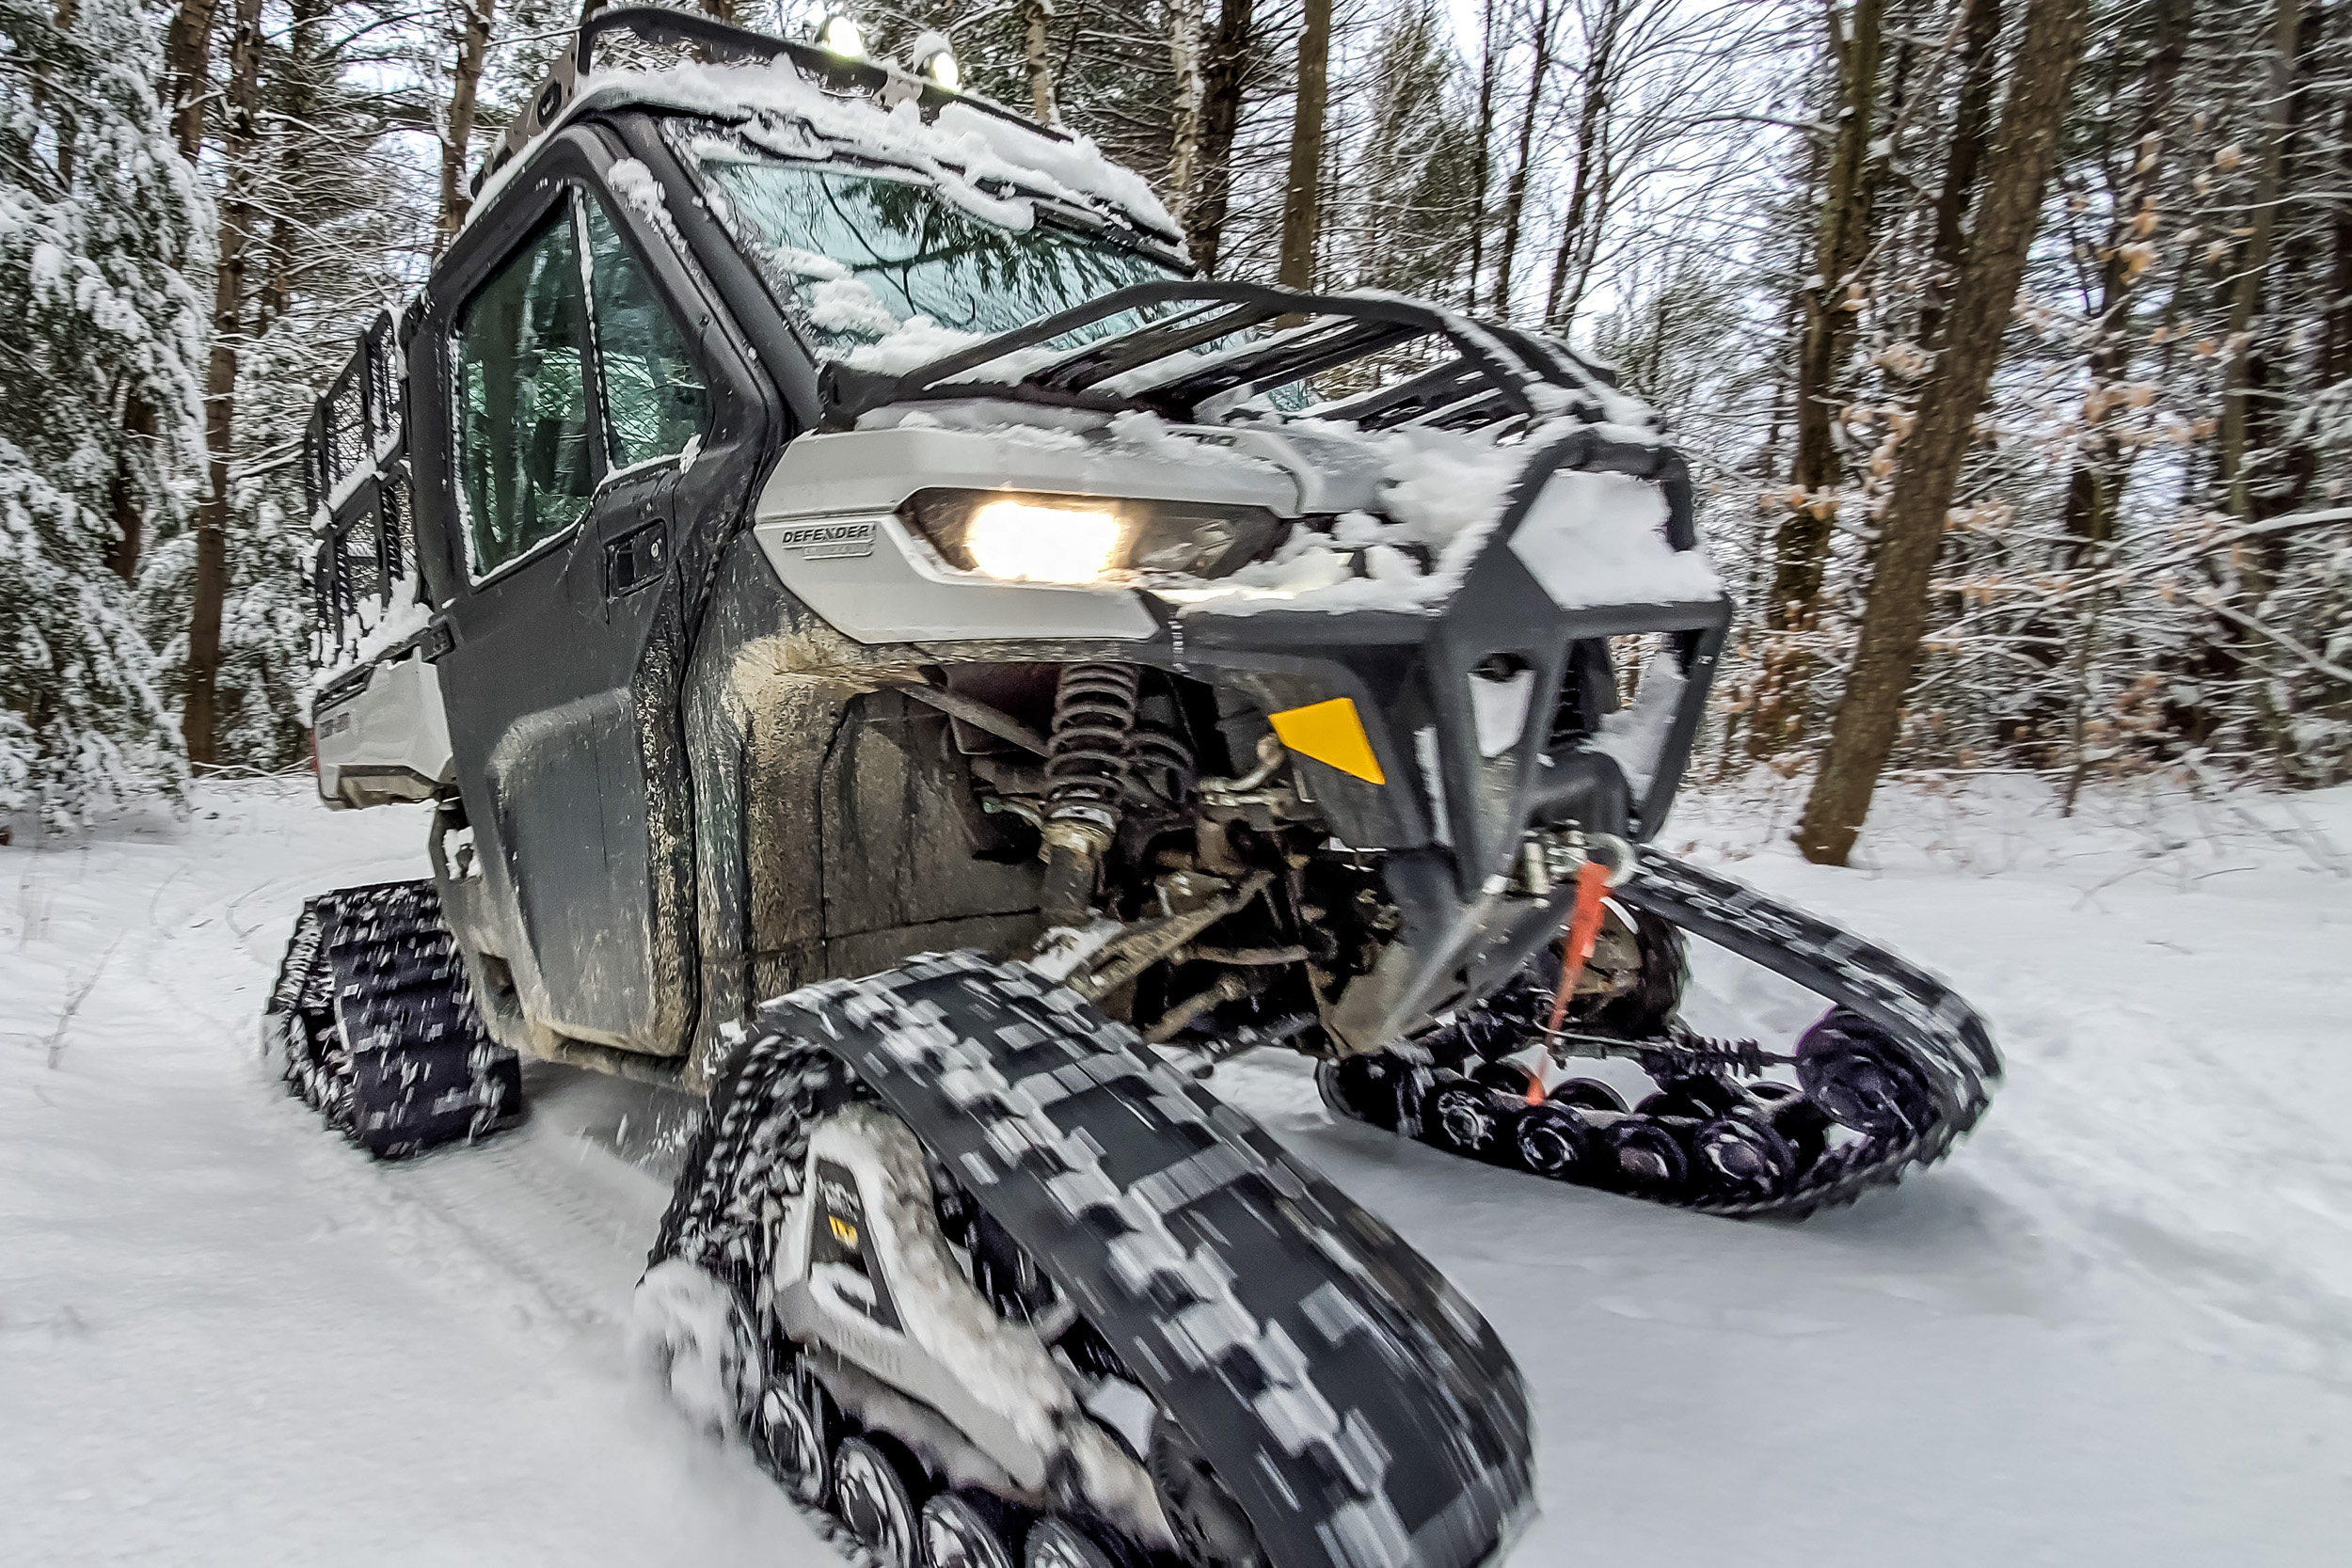 2021 Can-Am Defender Limited on tracks